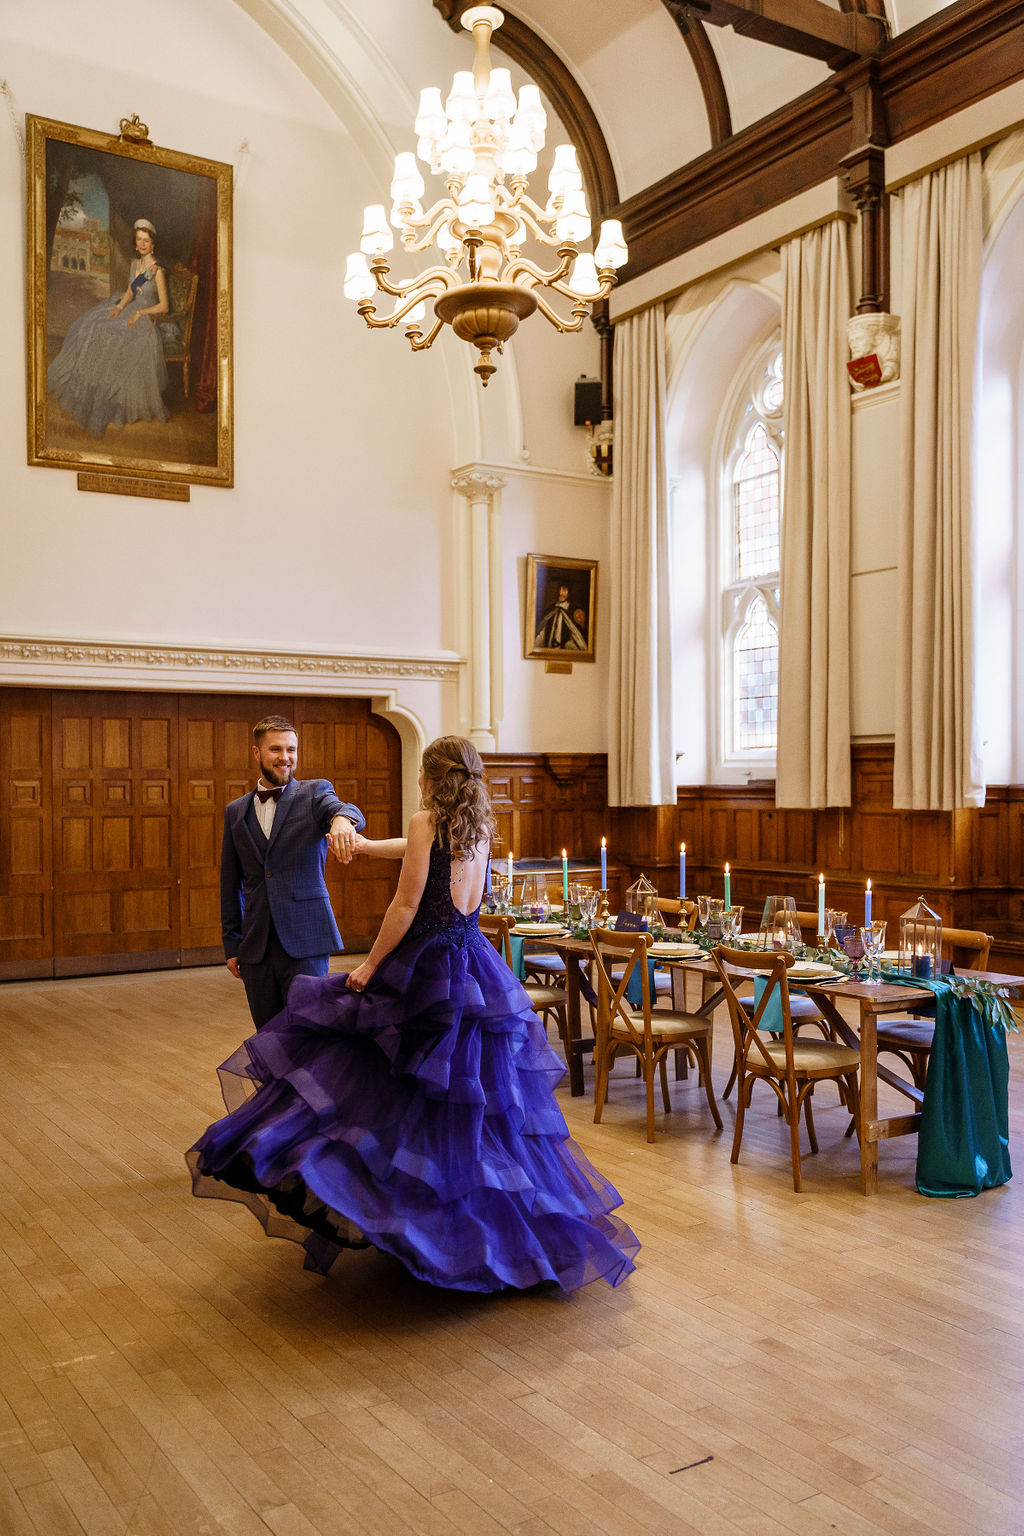 peacock themed wedding - peacock wedding - unique wedding colour scheme - quirky wedding - luxurious wedding - purple wedding dress- alternative wedding dress- unique wedding dress- coloured wedding dress